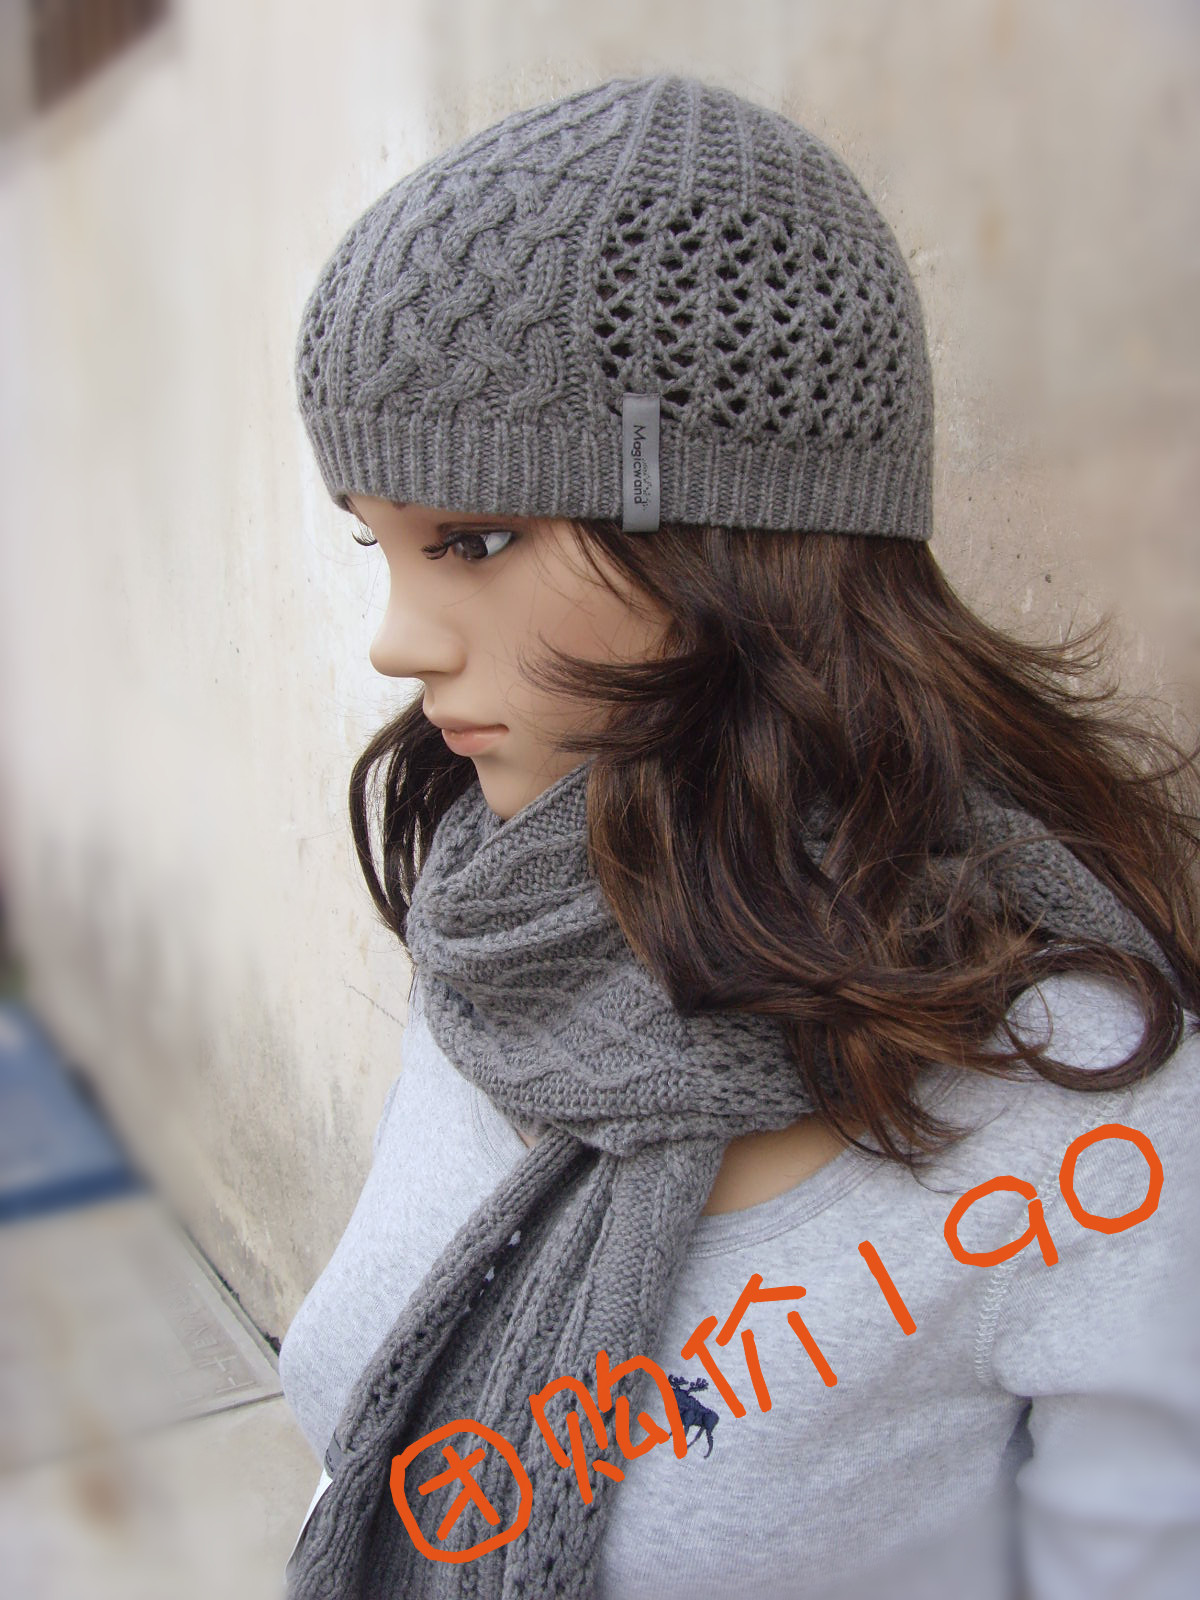 Three pieces of woolen scarf gloves and hats for men and women